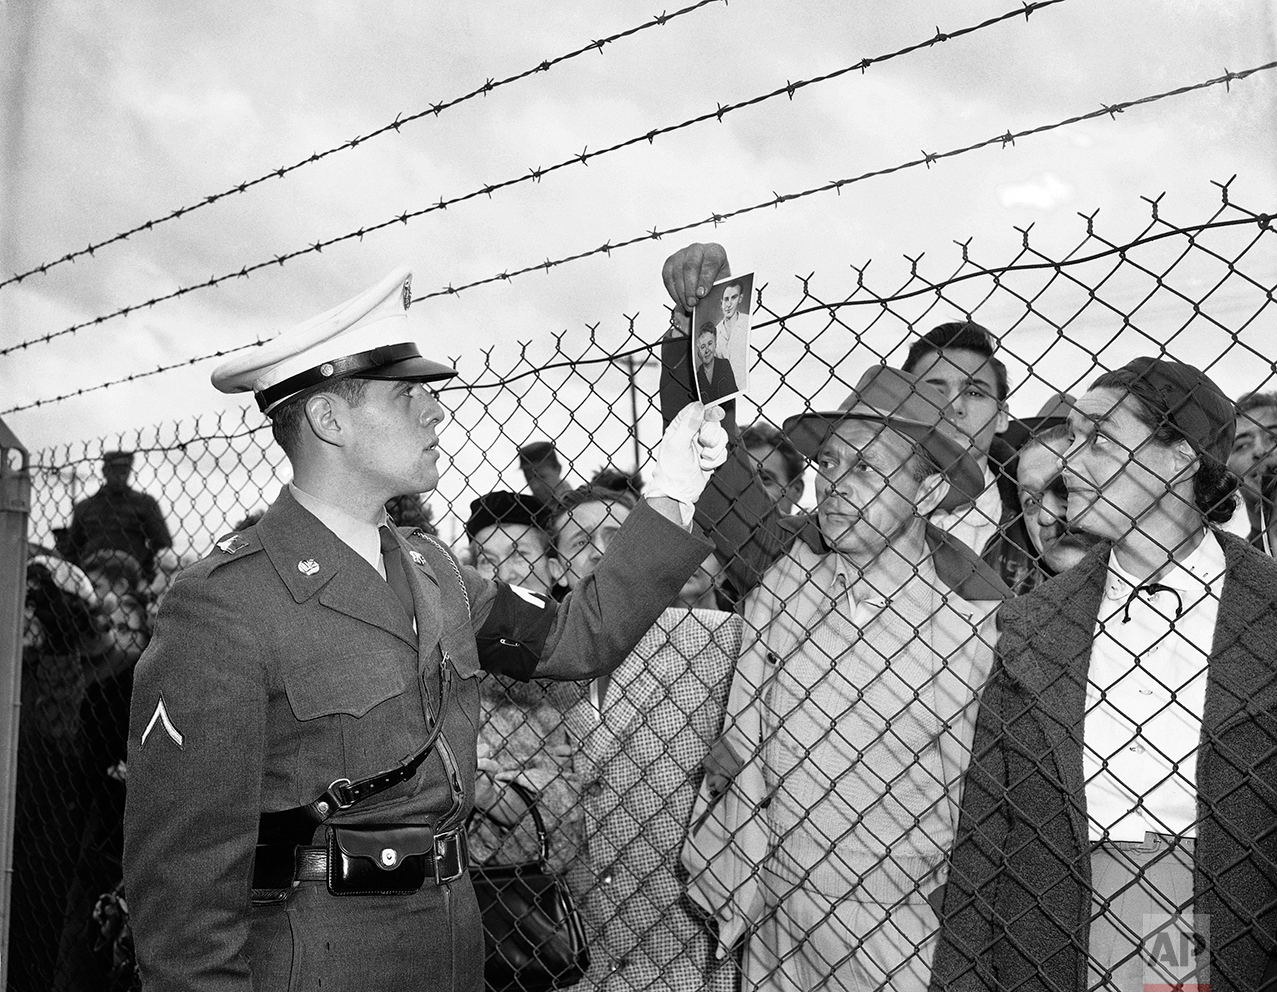 In this Nov. 21, 1951 photo, Bill Vetesy of Colonia, N.J., holds a picture of his mother and brother as he asks a military police officer inside the fence at Camp Kilmer, N.J., if they are among the 60 Hungarian refugees who arrived at the camp. The first plane load of refugees arrived at nearby McGuire Air Force Base from Vienna earlier in the day. The refugees will be housed at Camp Kilmer until quarters in private homes are made available to them in the United States. (AP Photo/Anthoy Camerano)